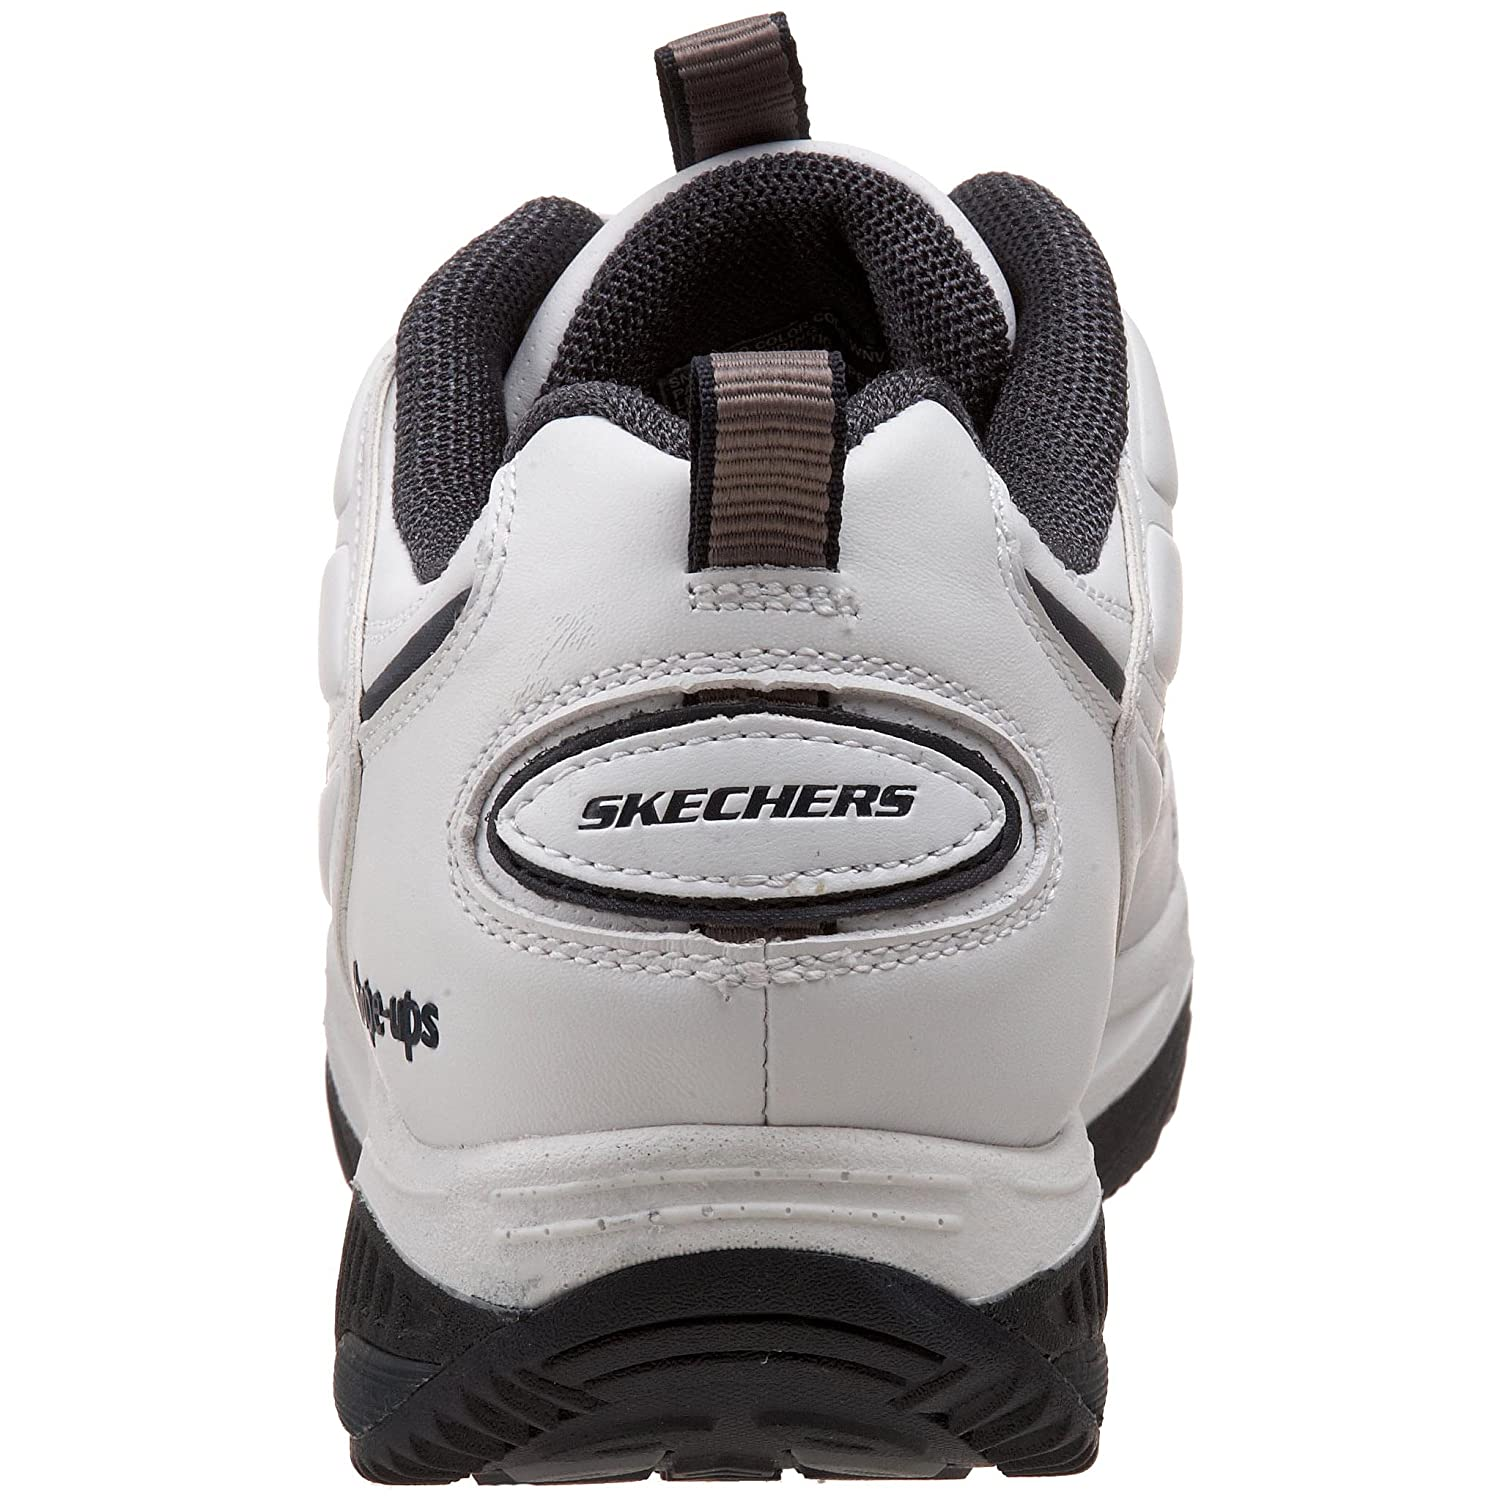 Skechers Shape-up Lavoro Mens Scarpa Velcro htuQECrb3